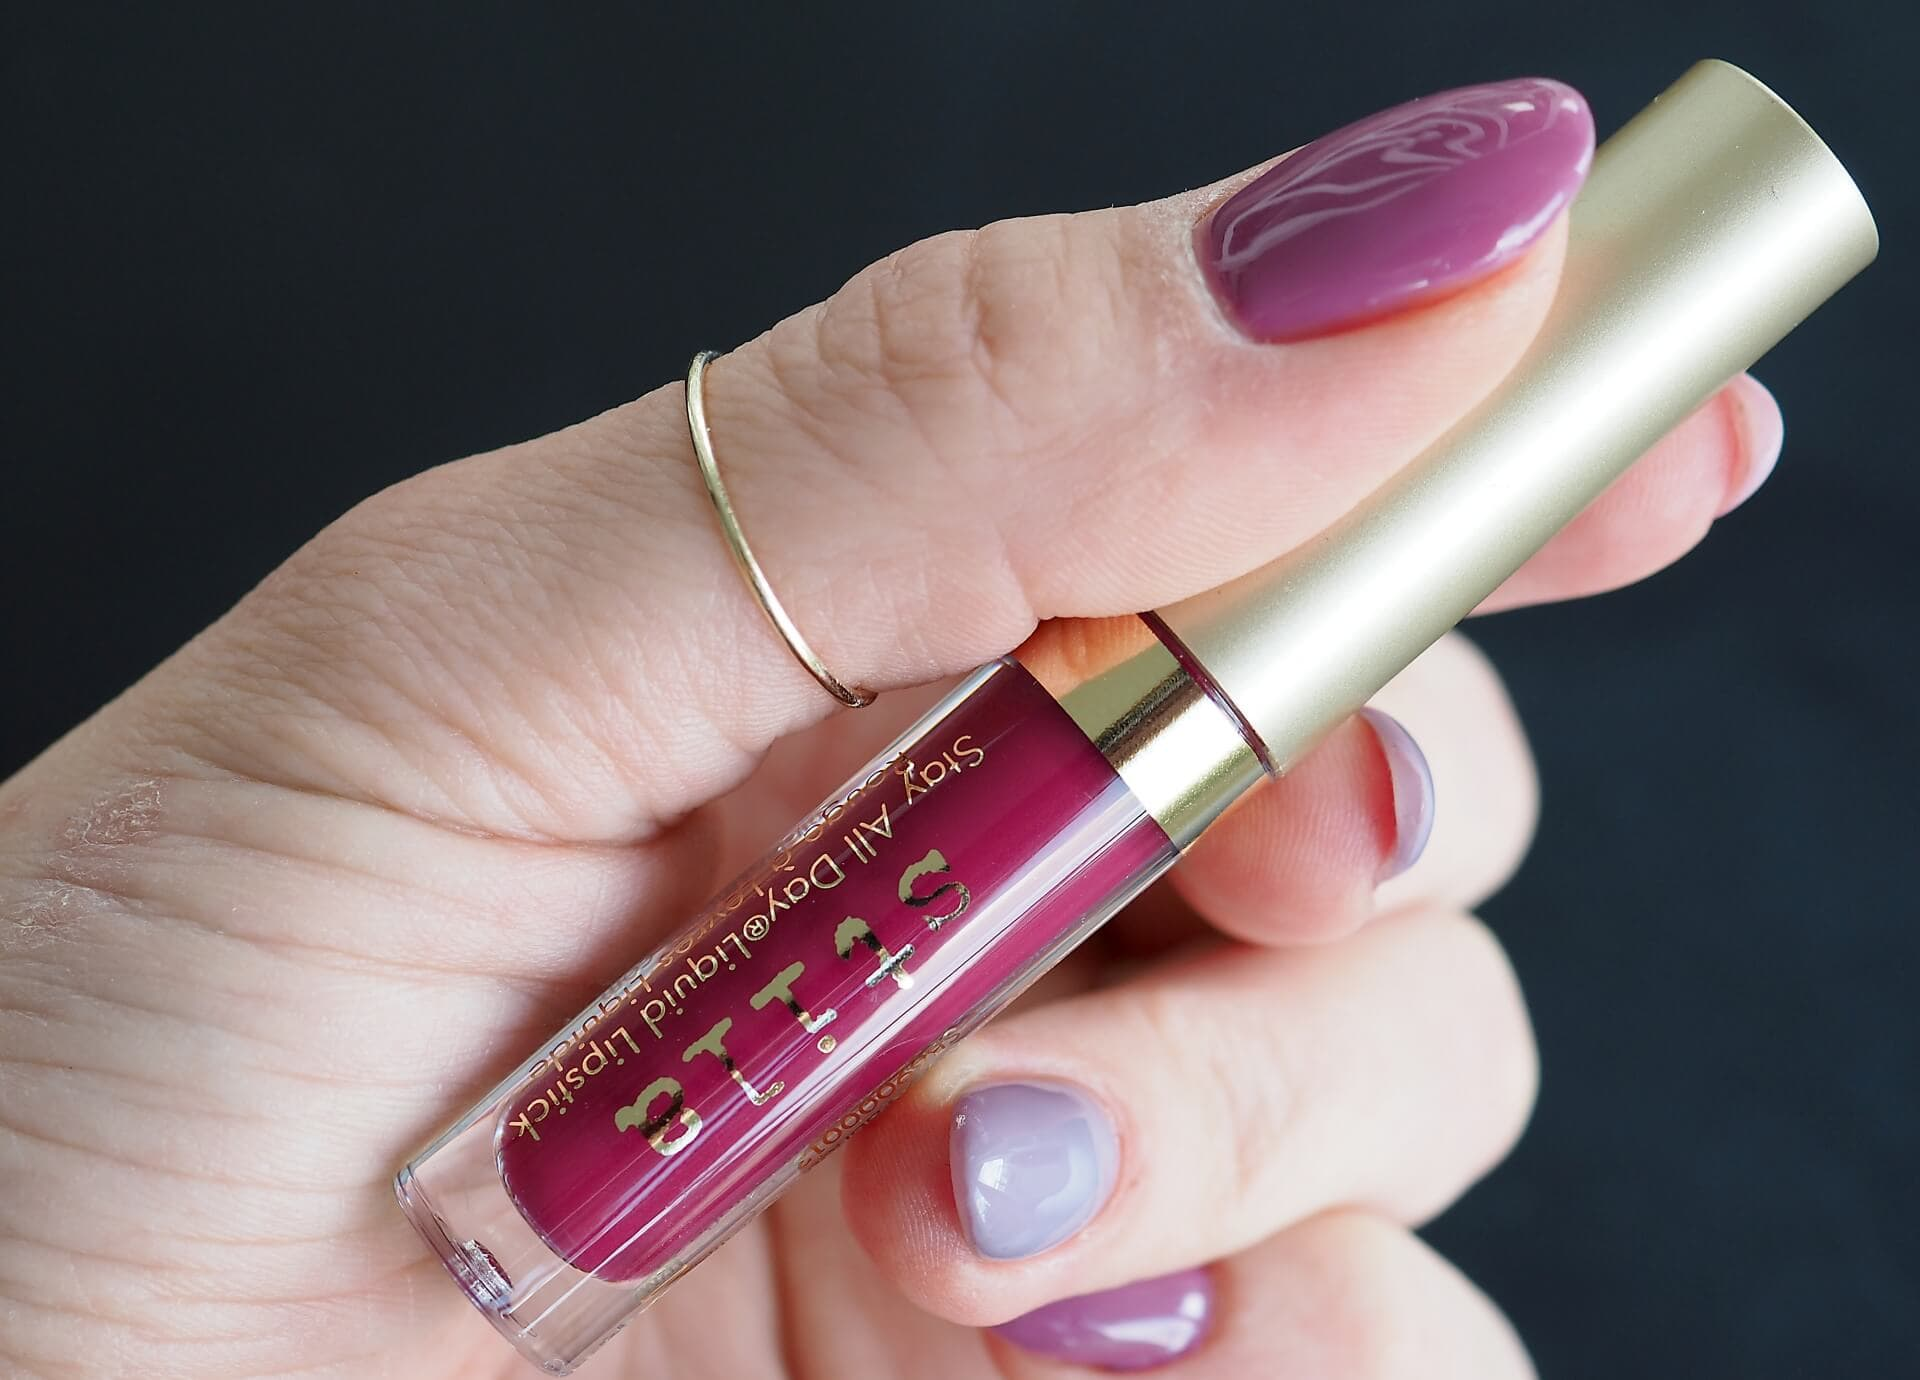 STILA BACCA STAY ALL DAY LIQUID LIPSTICK